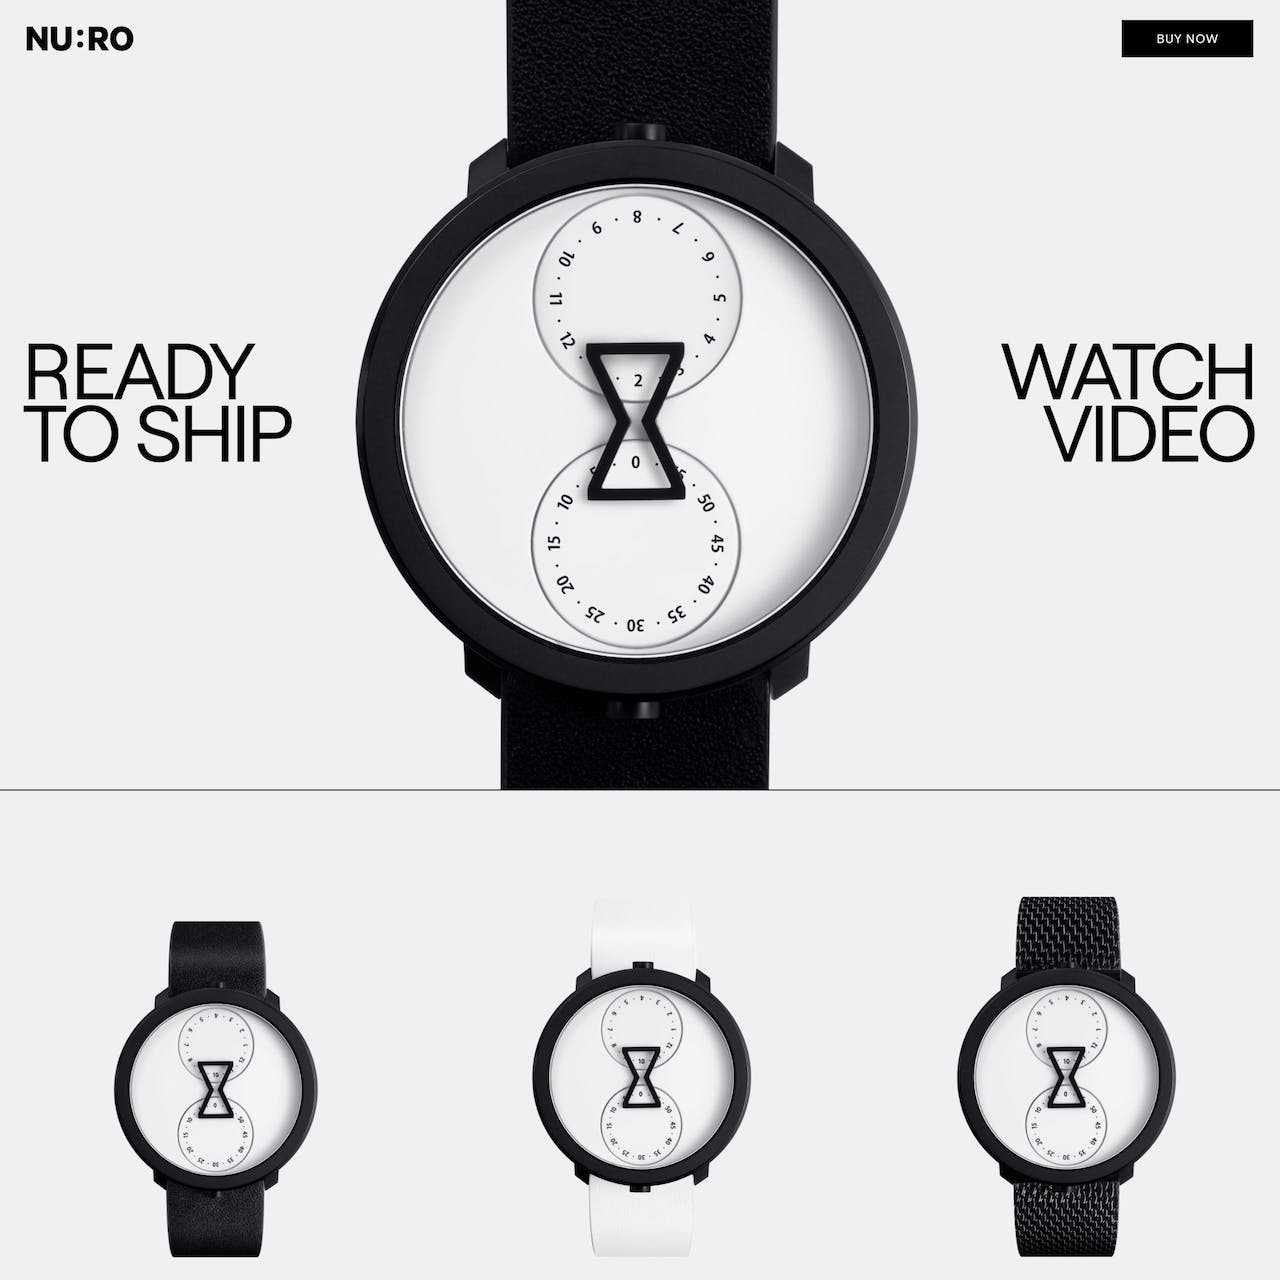 NU:RO Watch Website Screenshot